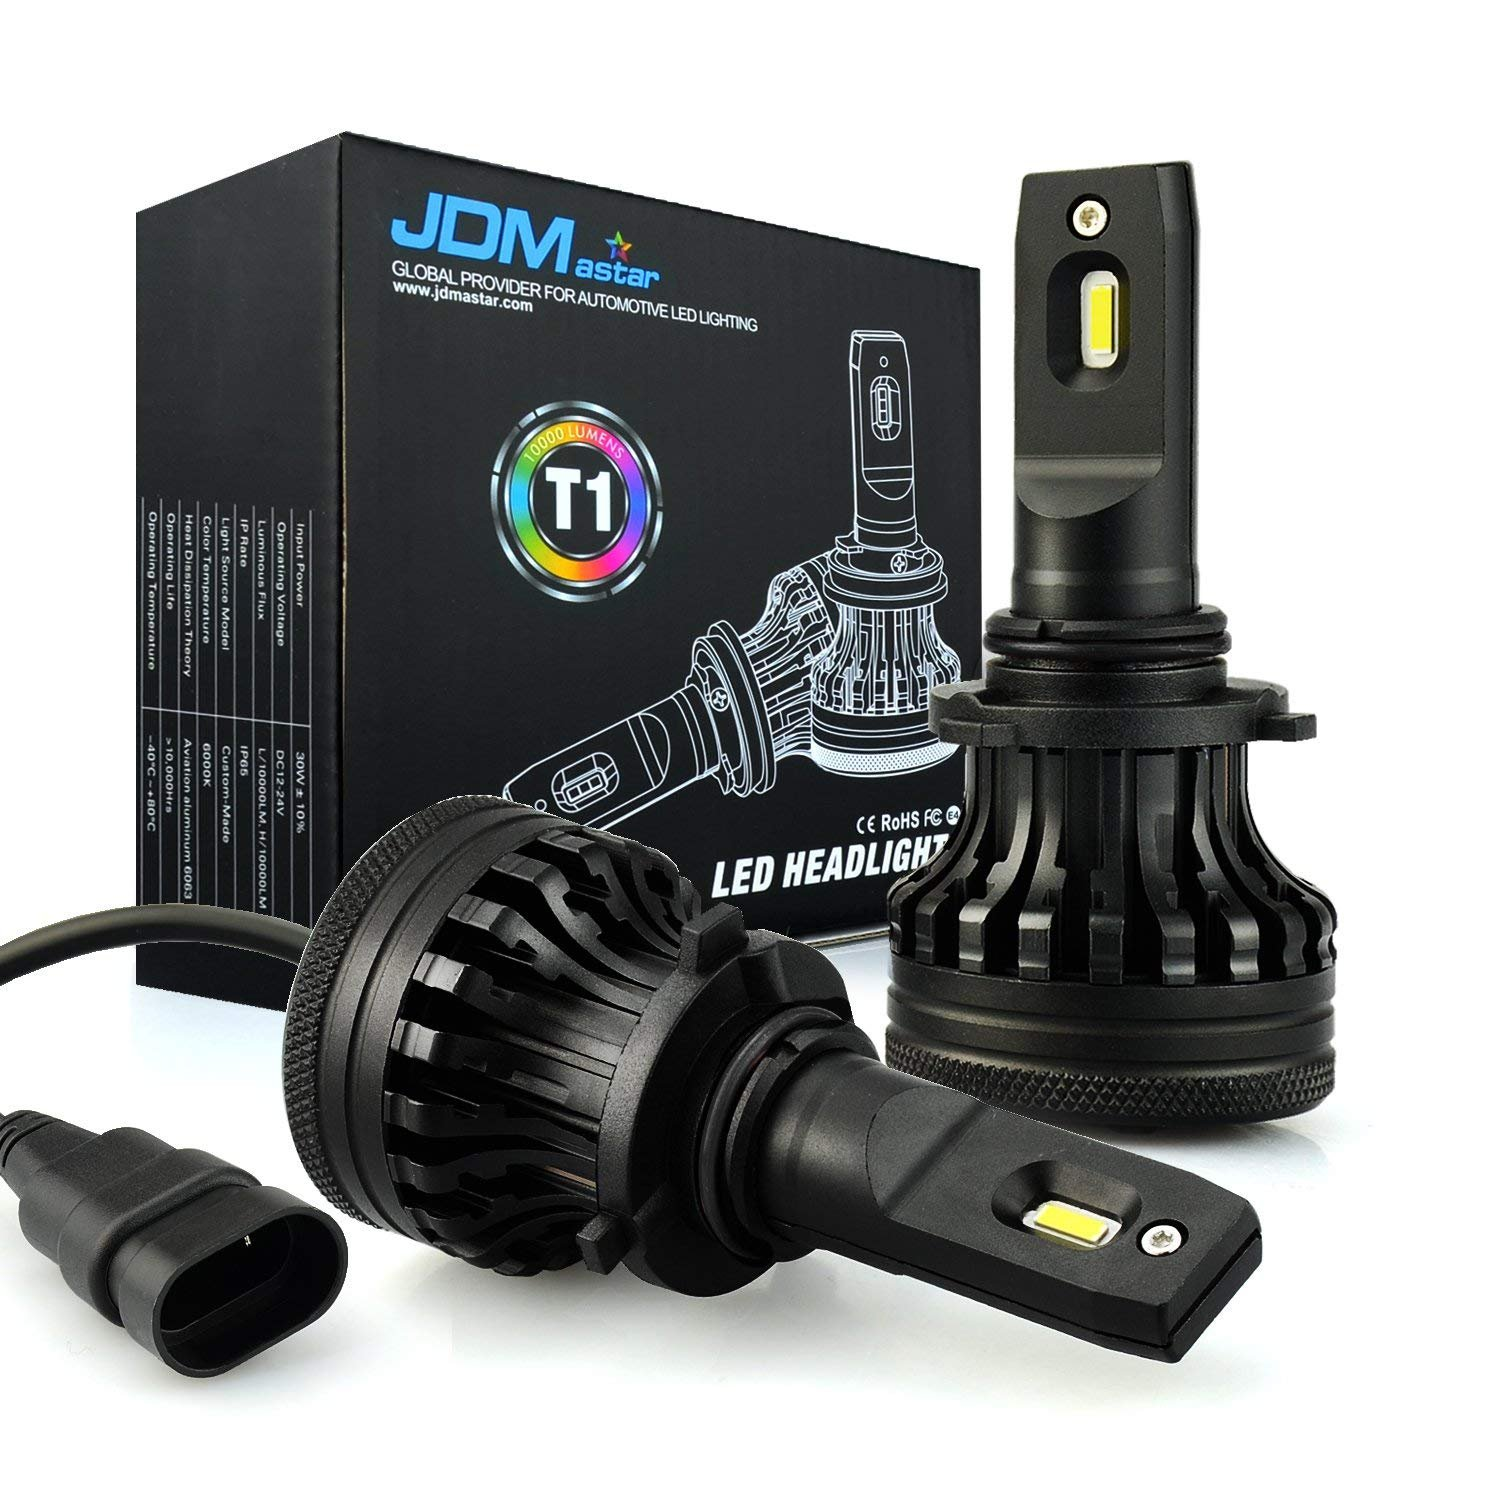 JDM ASTAR Newest Version T1 10000 Lumens Extremely Bright High Power 9012 All-in-